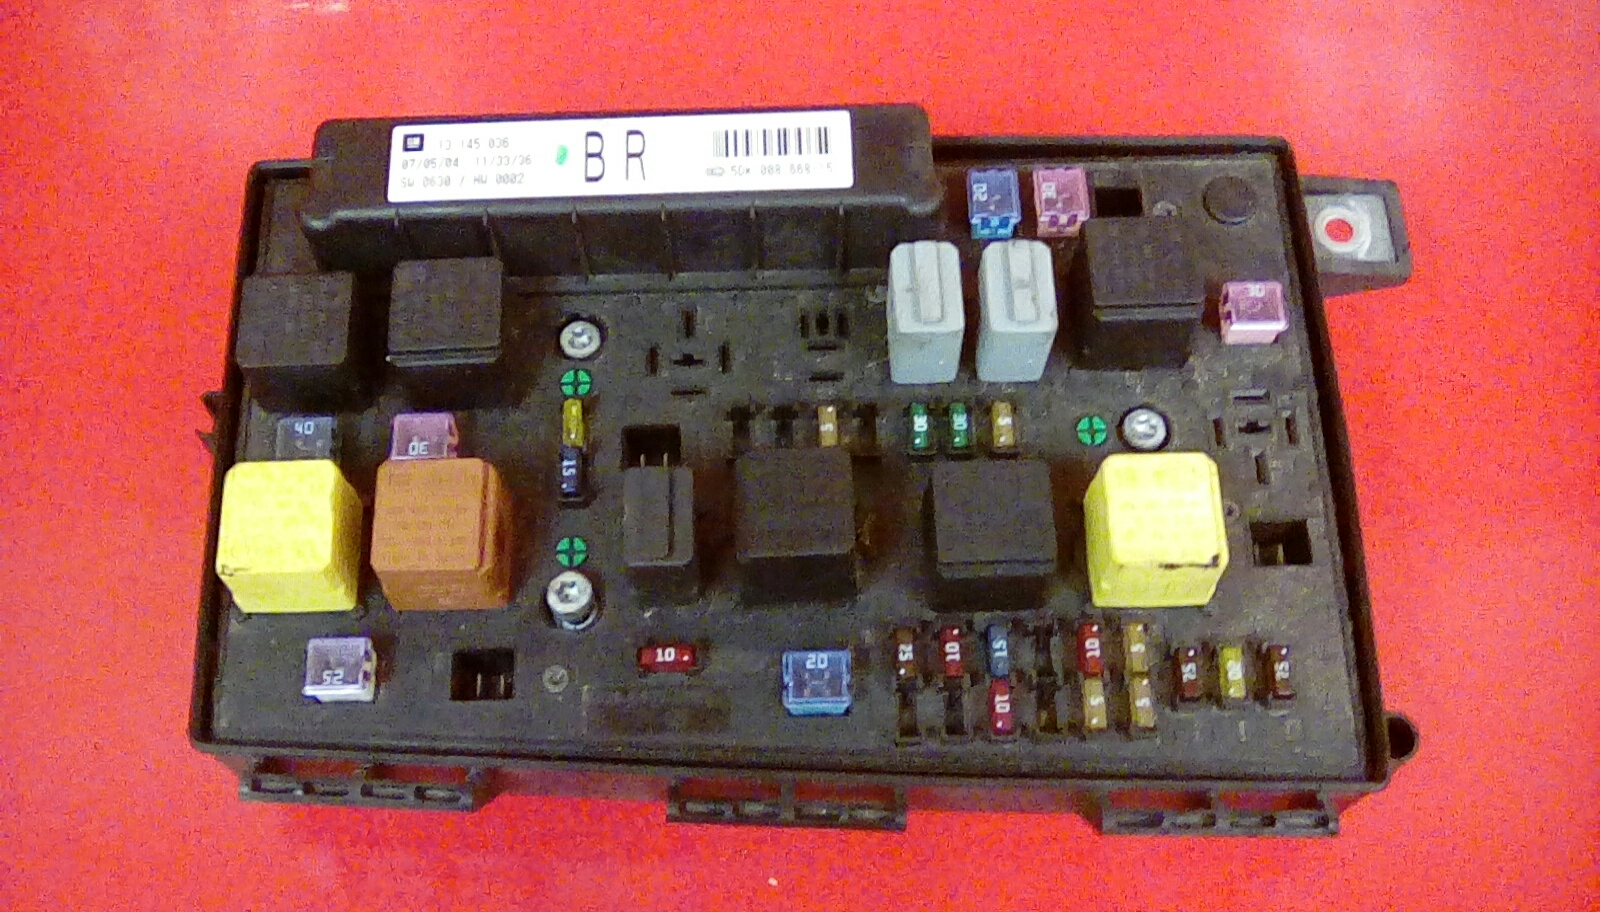 VAUXHALL ASTRA H MK5 FRONT BCM UEC ELECTRIC CONTROL BR FUSE BOX 2004-2010